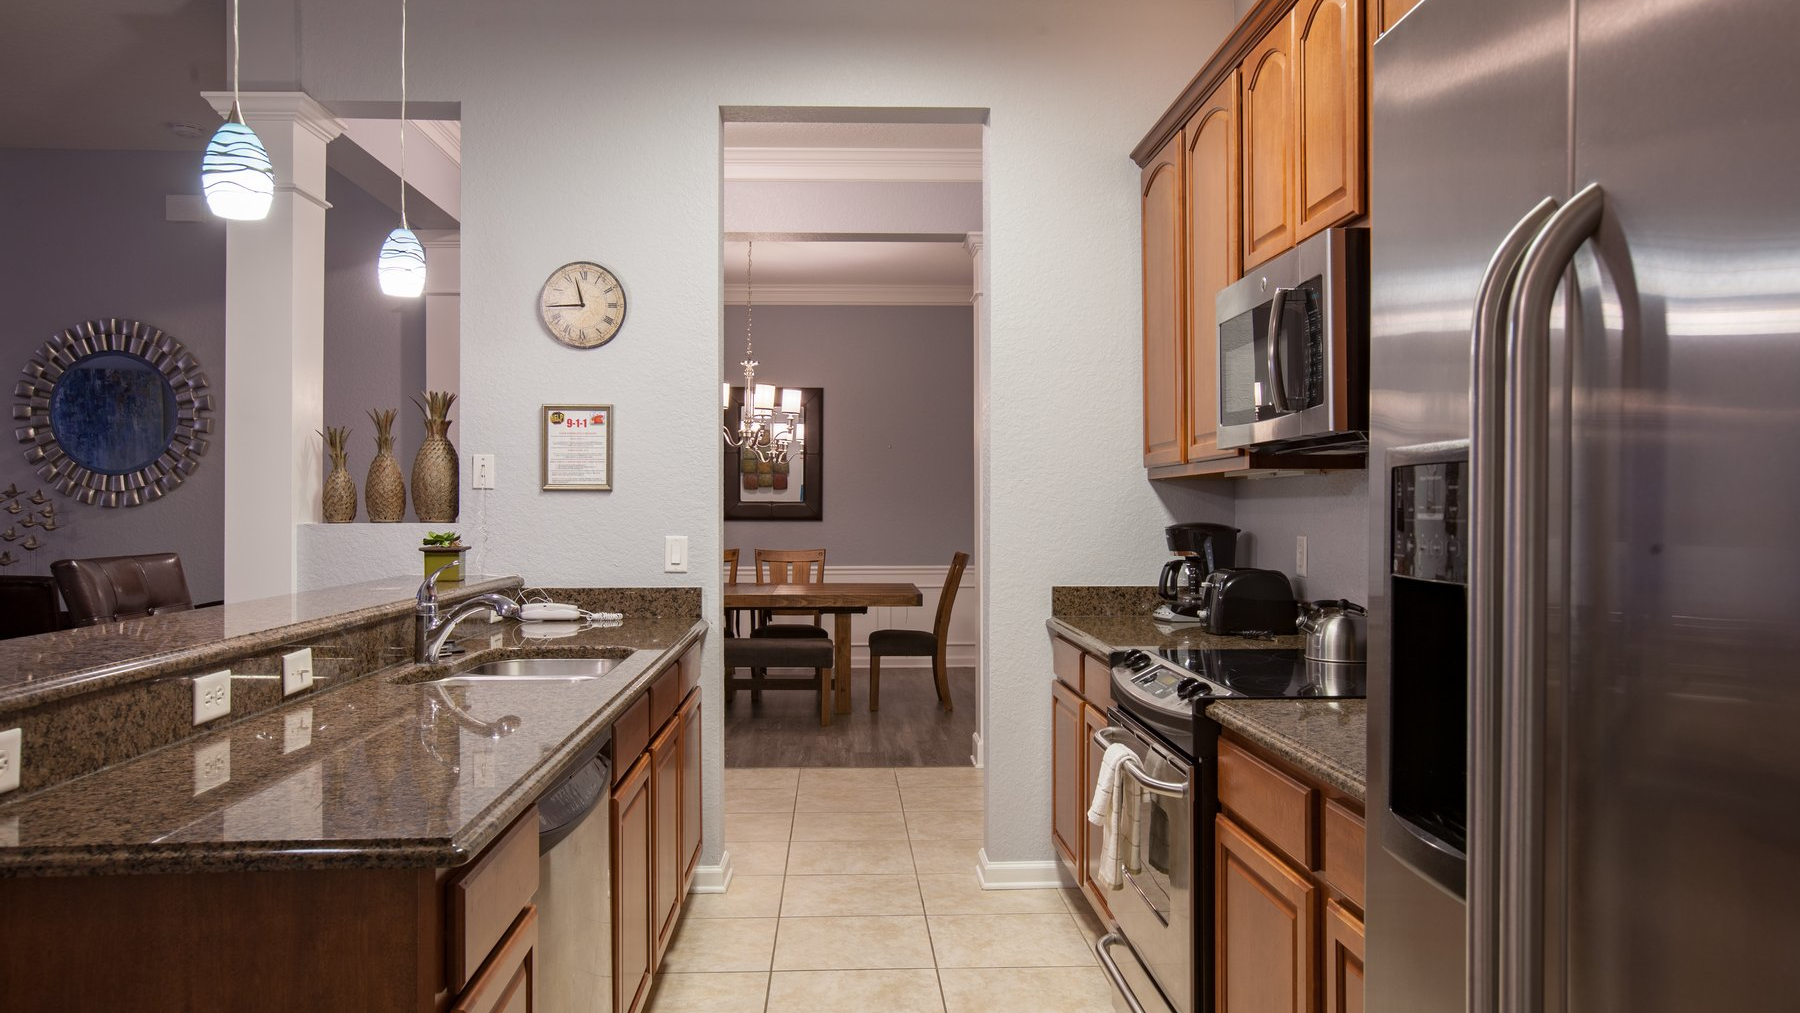 Fully equipped galley style kitchen with stainless steel appliances